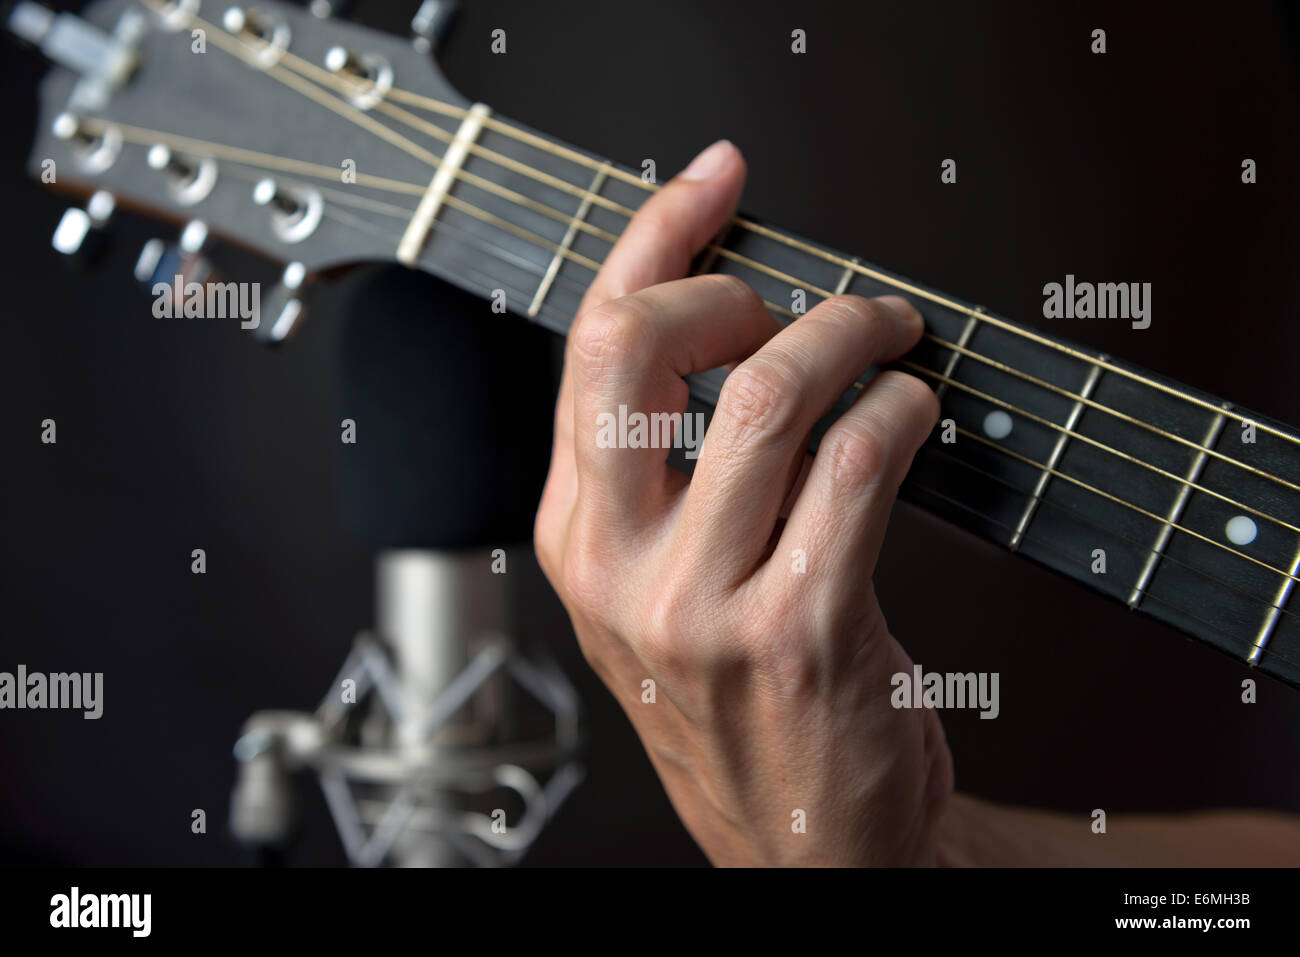 F Bar Chord Stock Photos F Bar Chord Stock Images Alamy